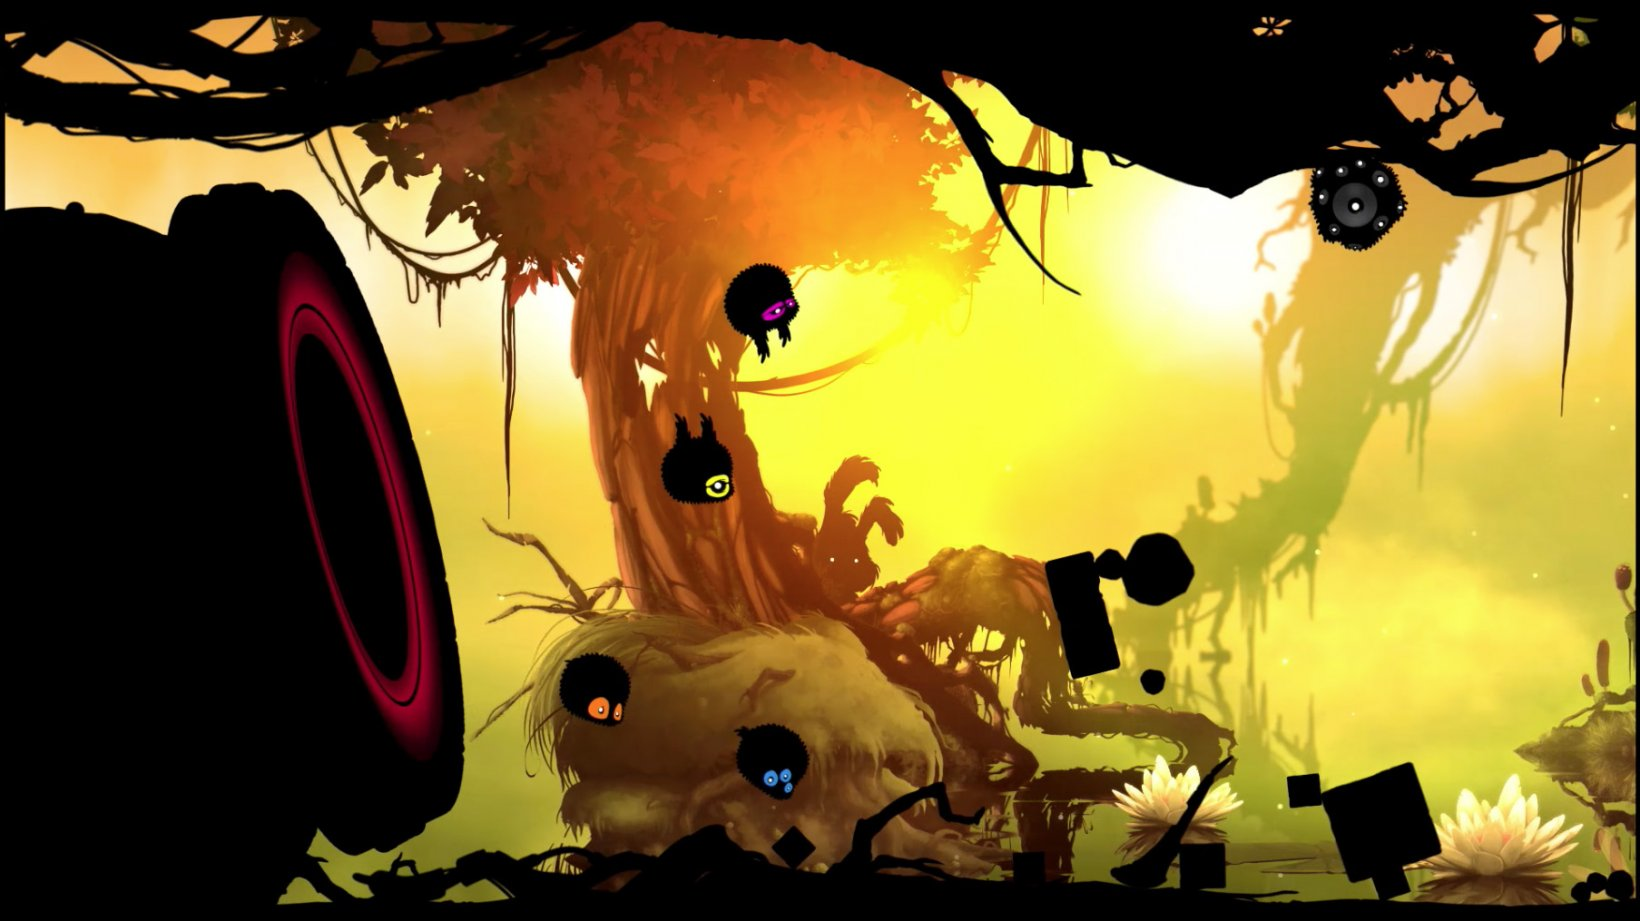 Badland for Android has caught up with the iOS version and been updated with cooperative multiplayer